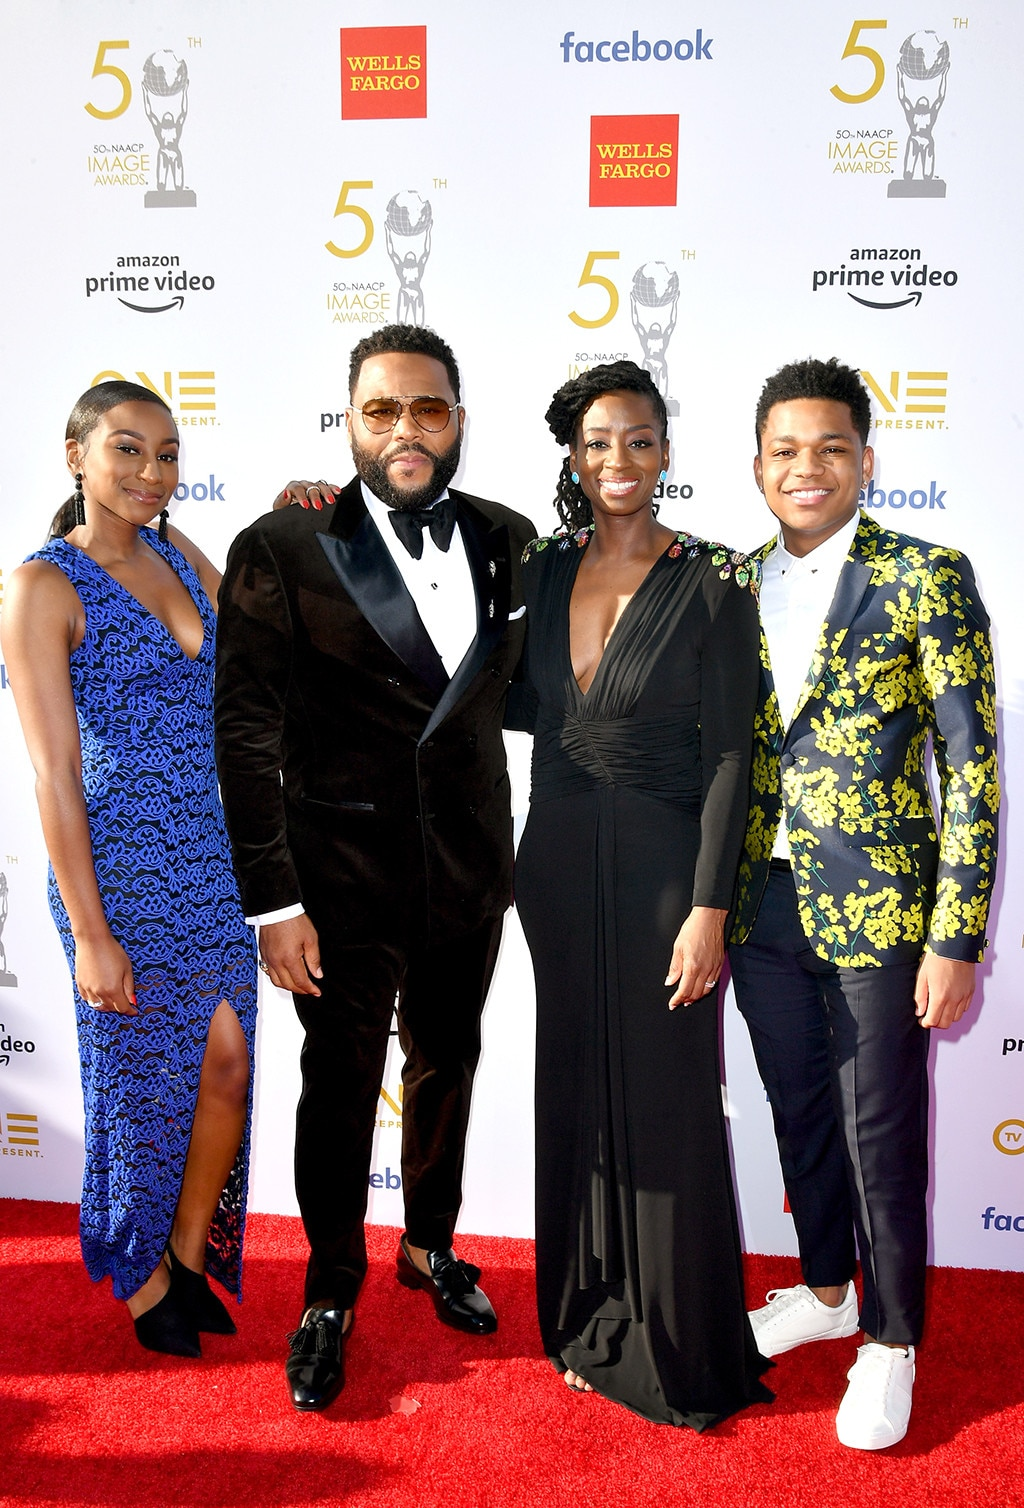 Kyra Anderson, Anthony Anderson, Alvina Stewart & Nathan Anderson -  The host of the show poses with his family outside the Dolby Theater in Hollywood.